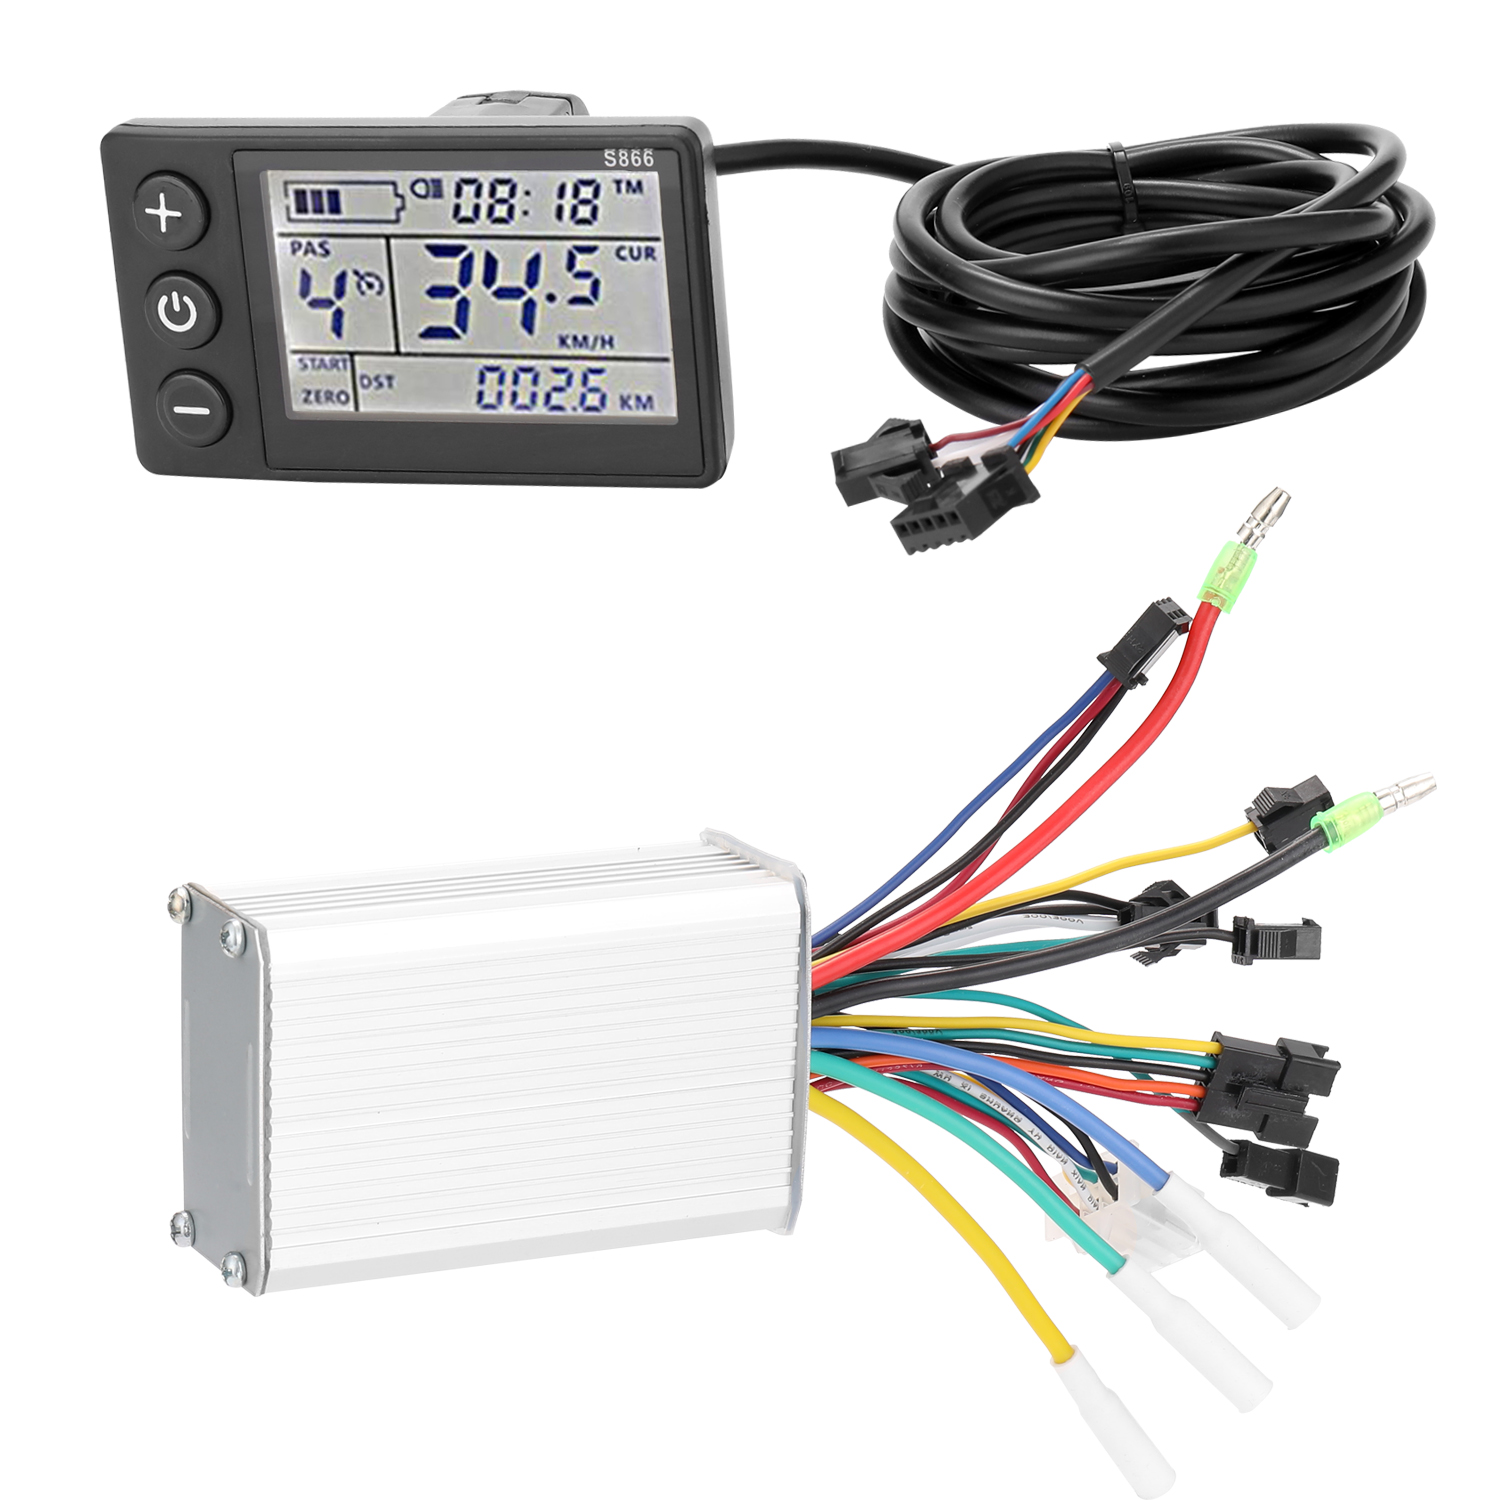 Electric Bike Controller 24V-48V/36V-<font><b>60V</b></font> 350W Brushless E-bike Controller with LCD Display Bicycles <font><b>Motor</b></font> Scooter Controller image